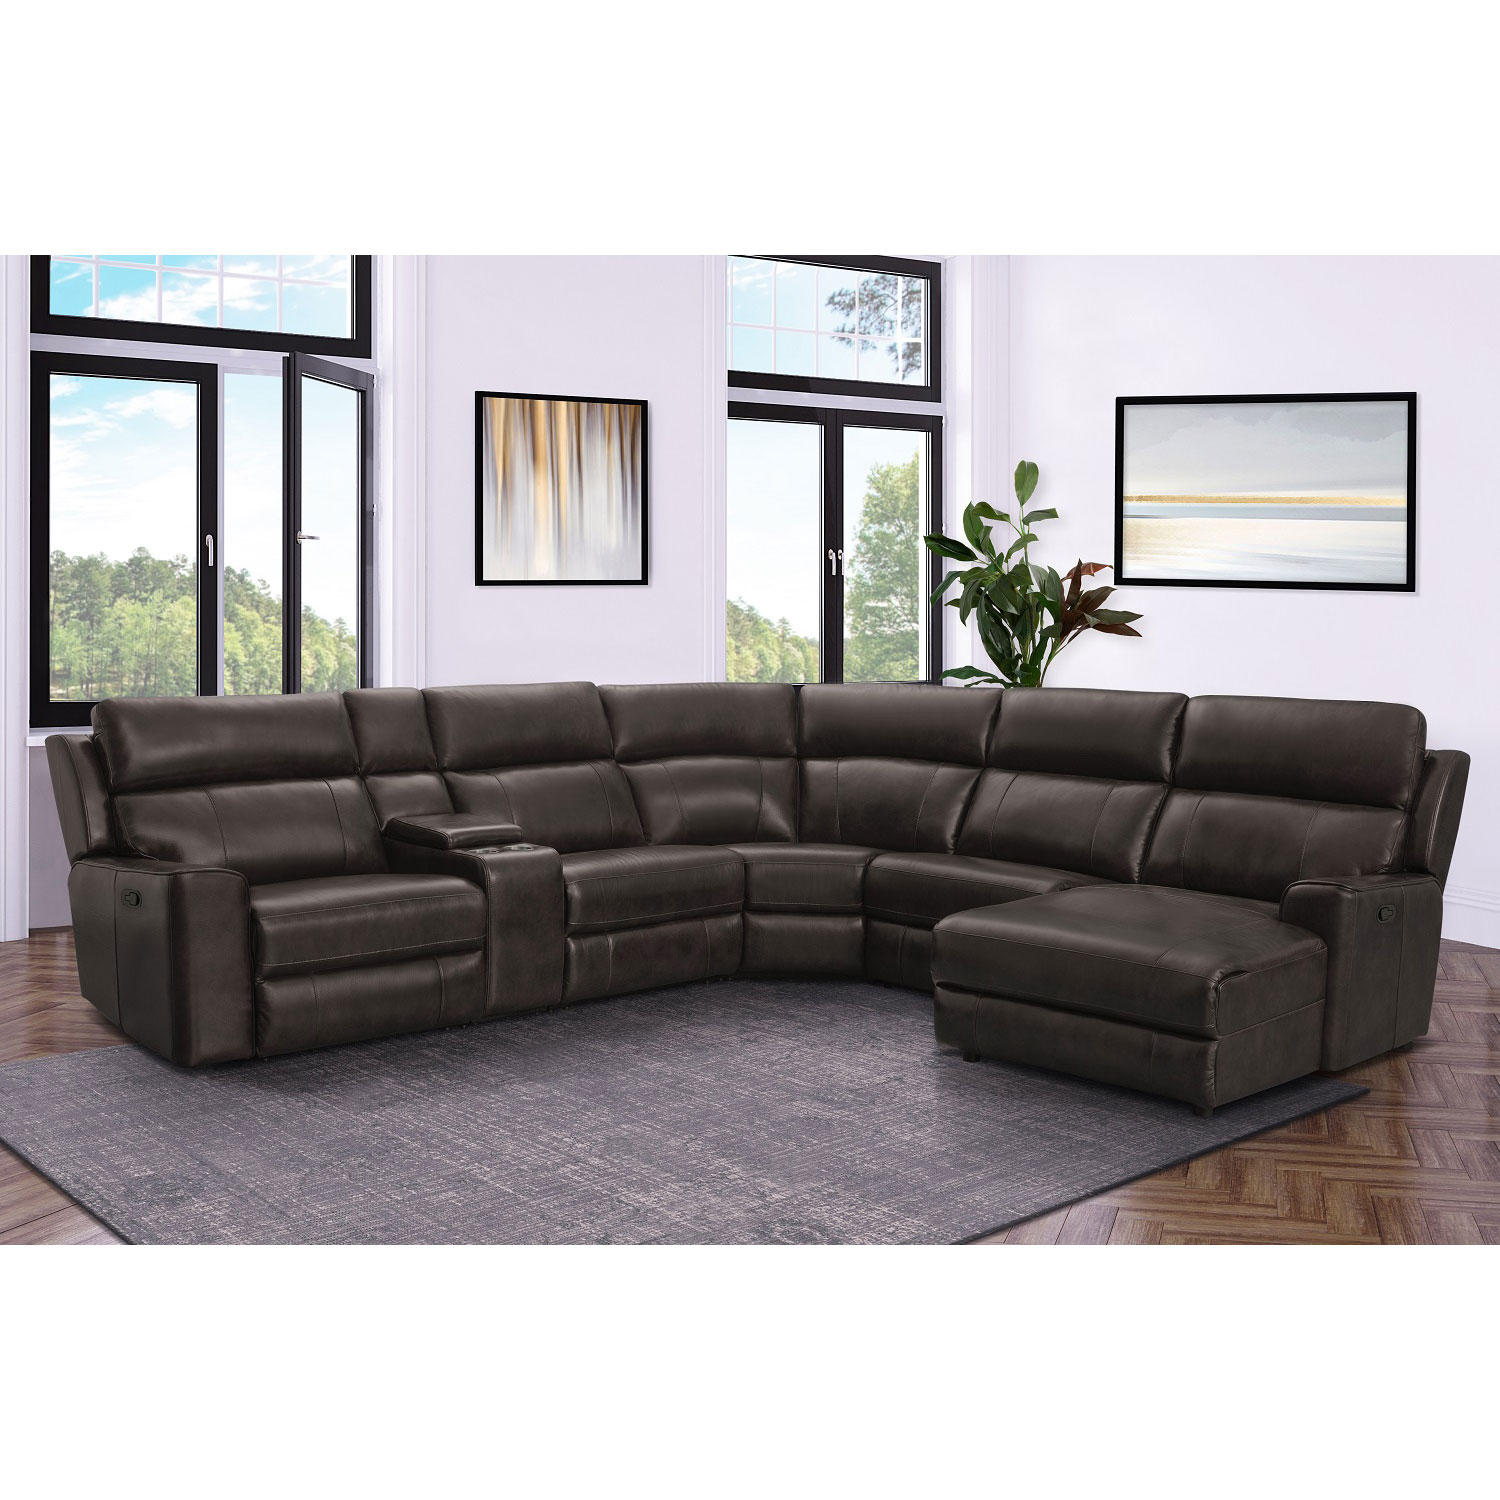 Conway Top-Grain Leather 6-Piece Reclining Sectional Sofa